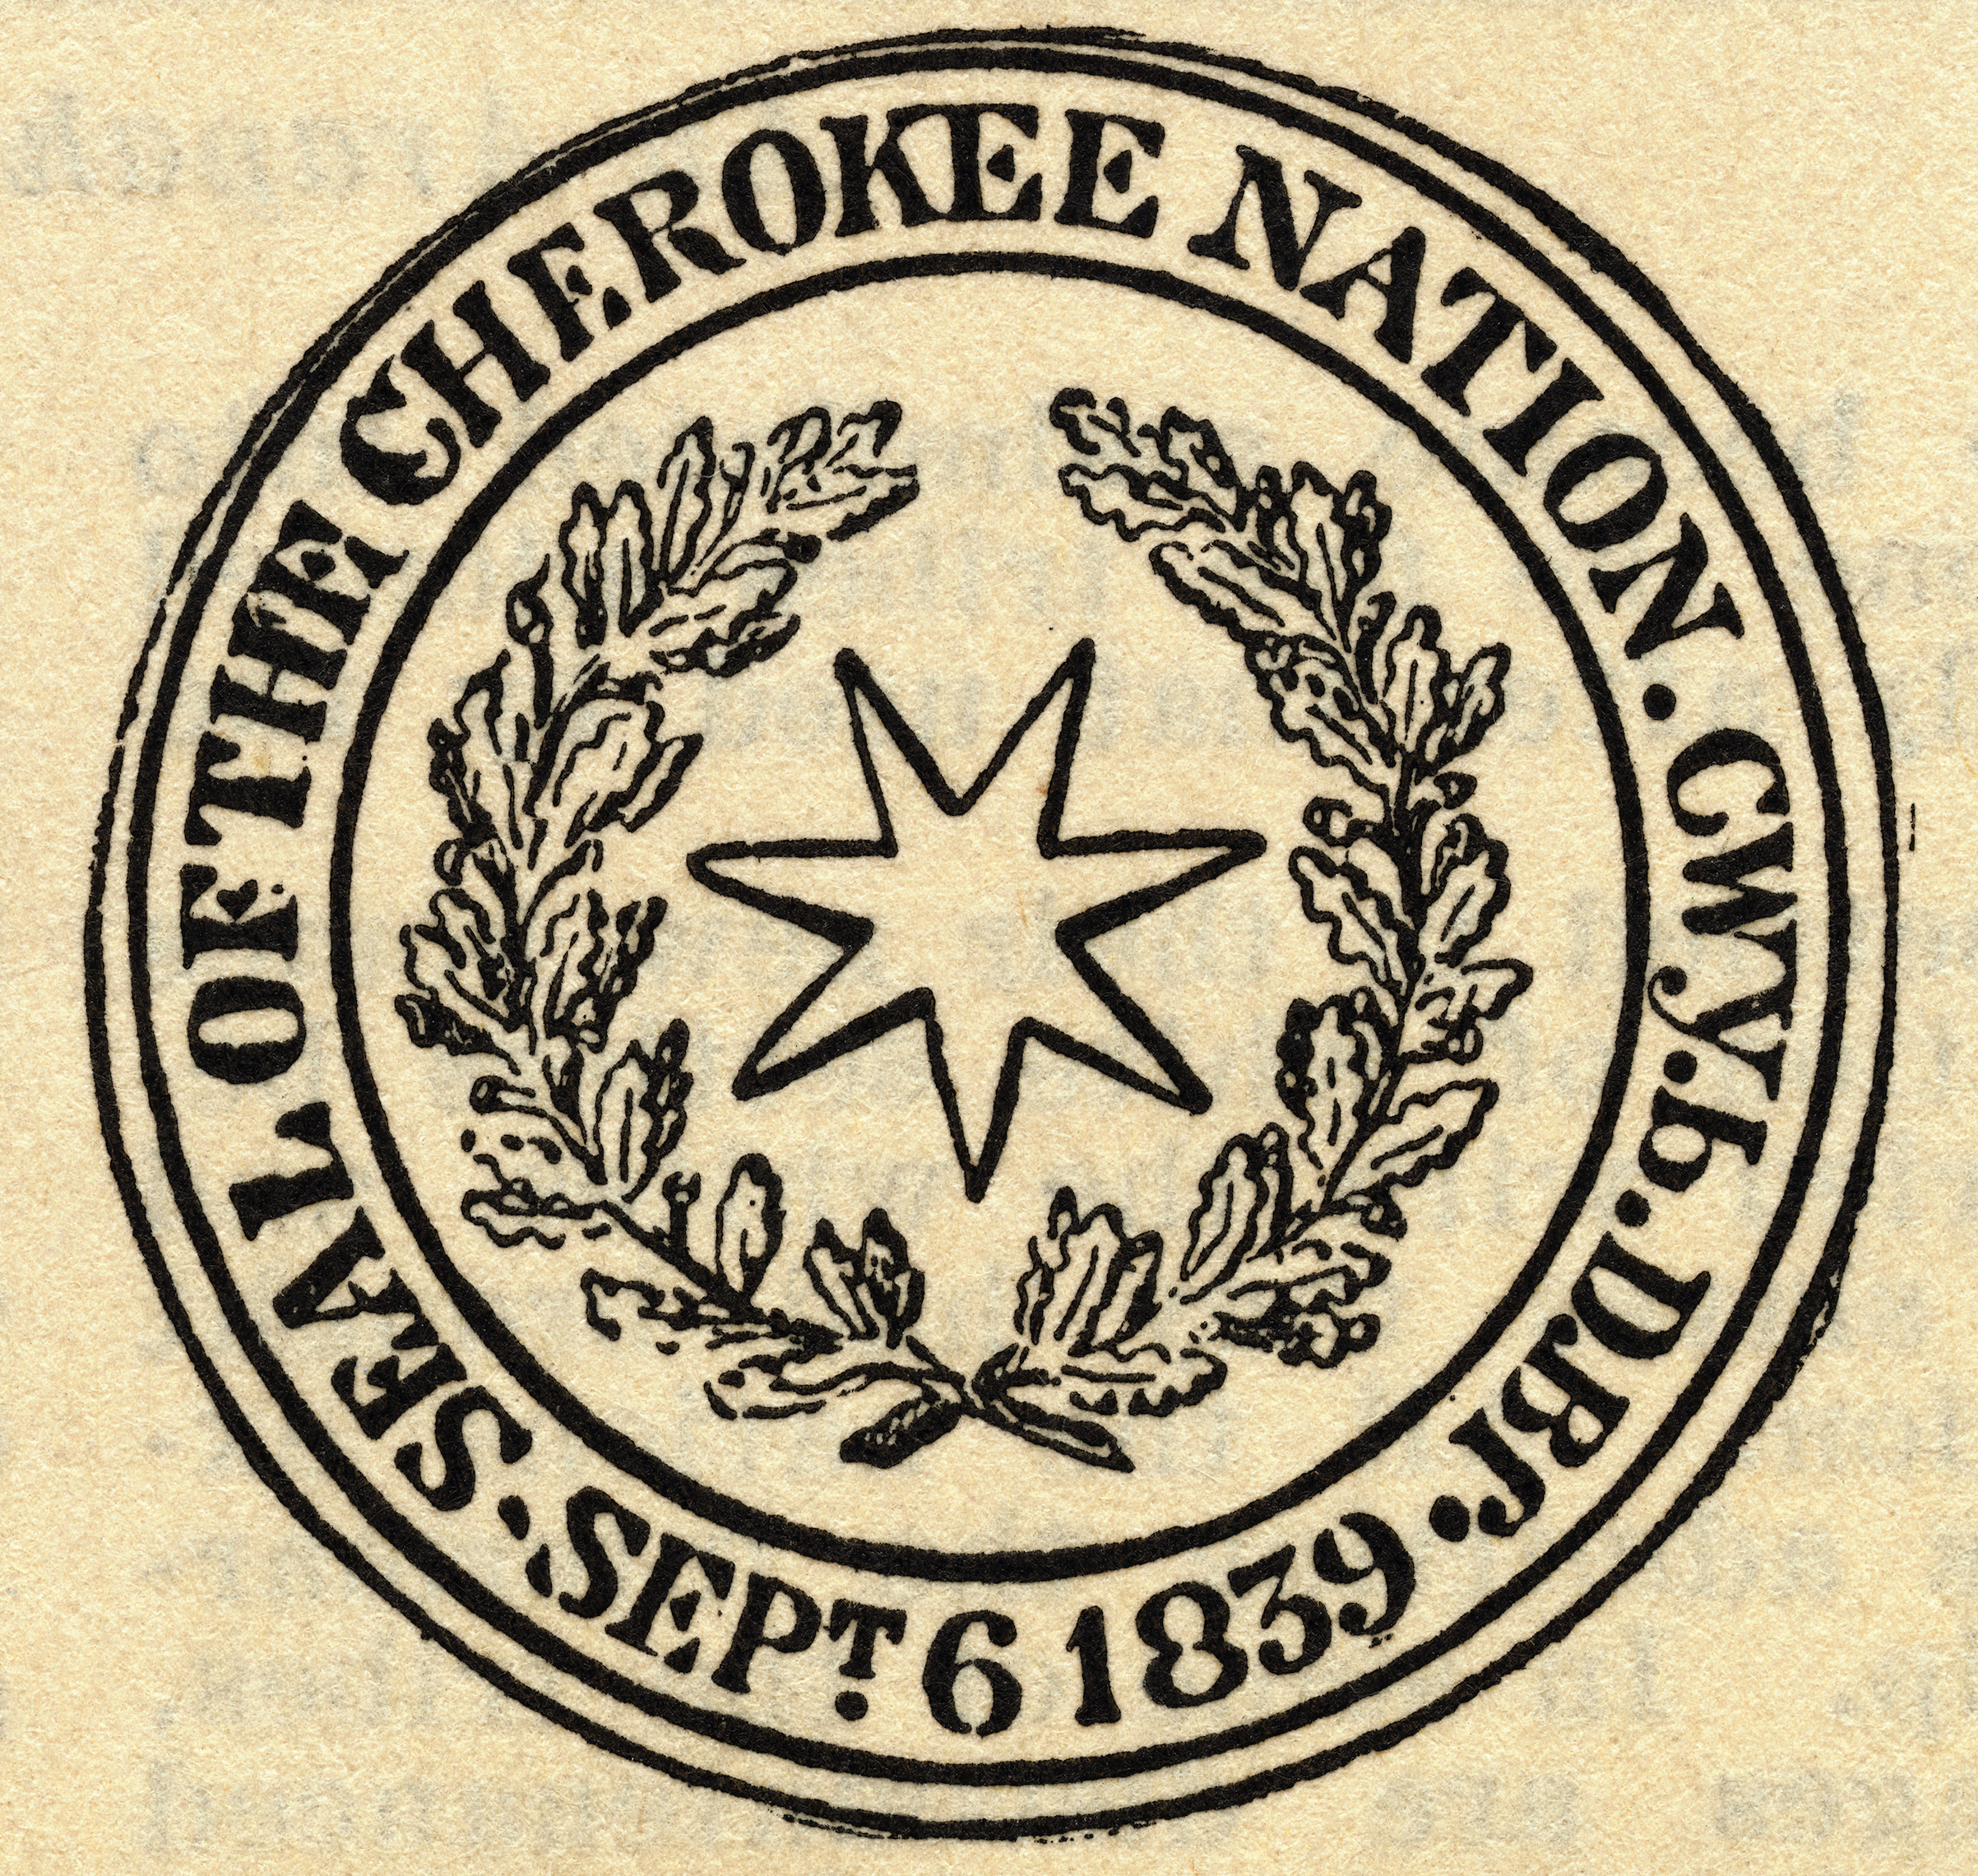 Seal of the Cherokee Nation in 1839